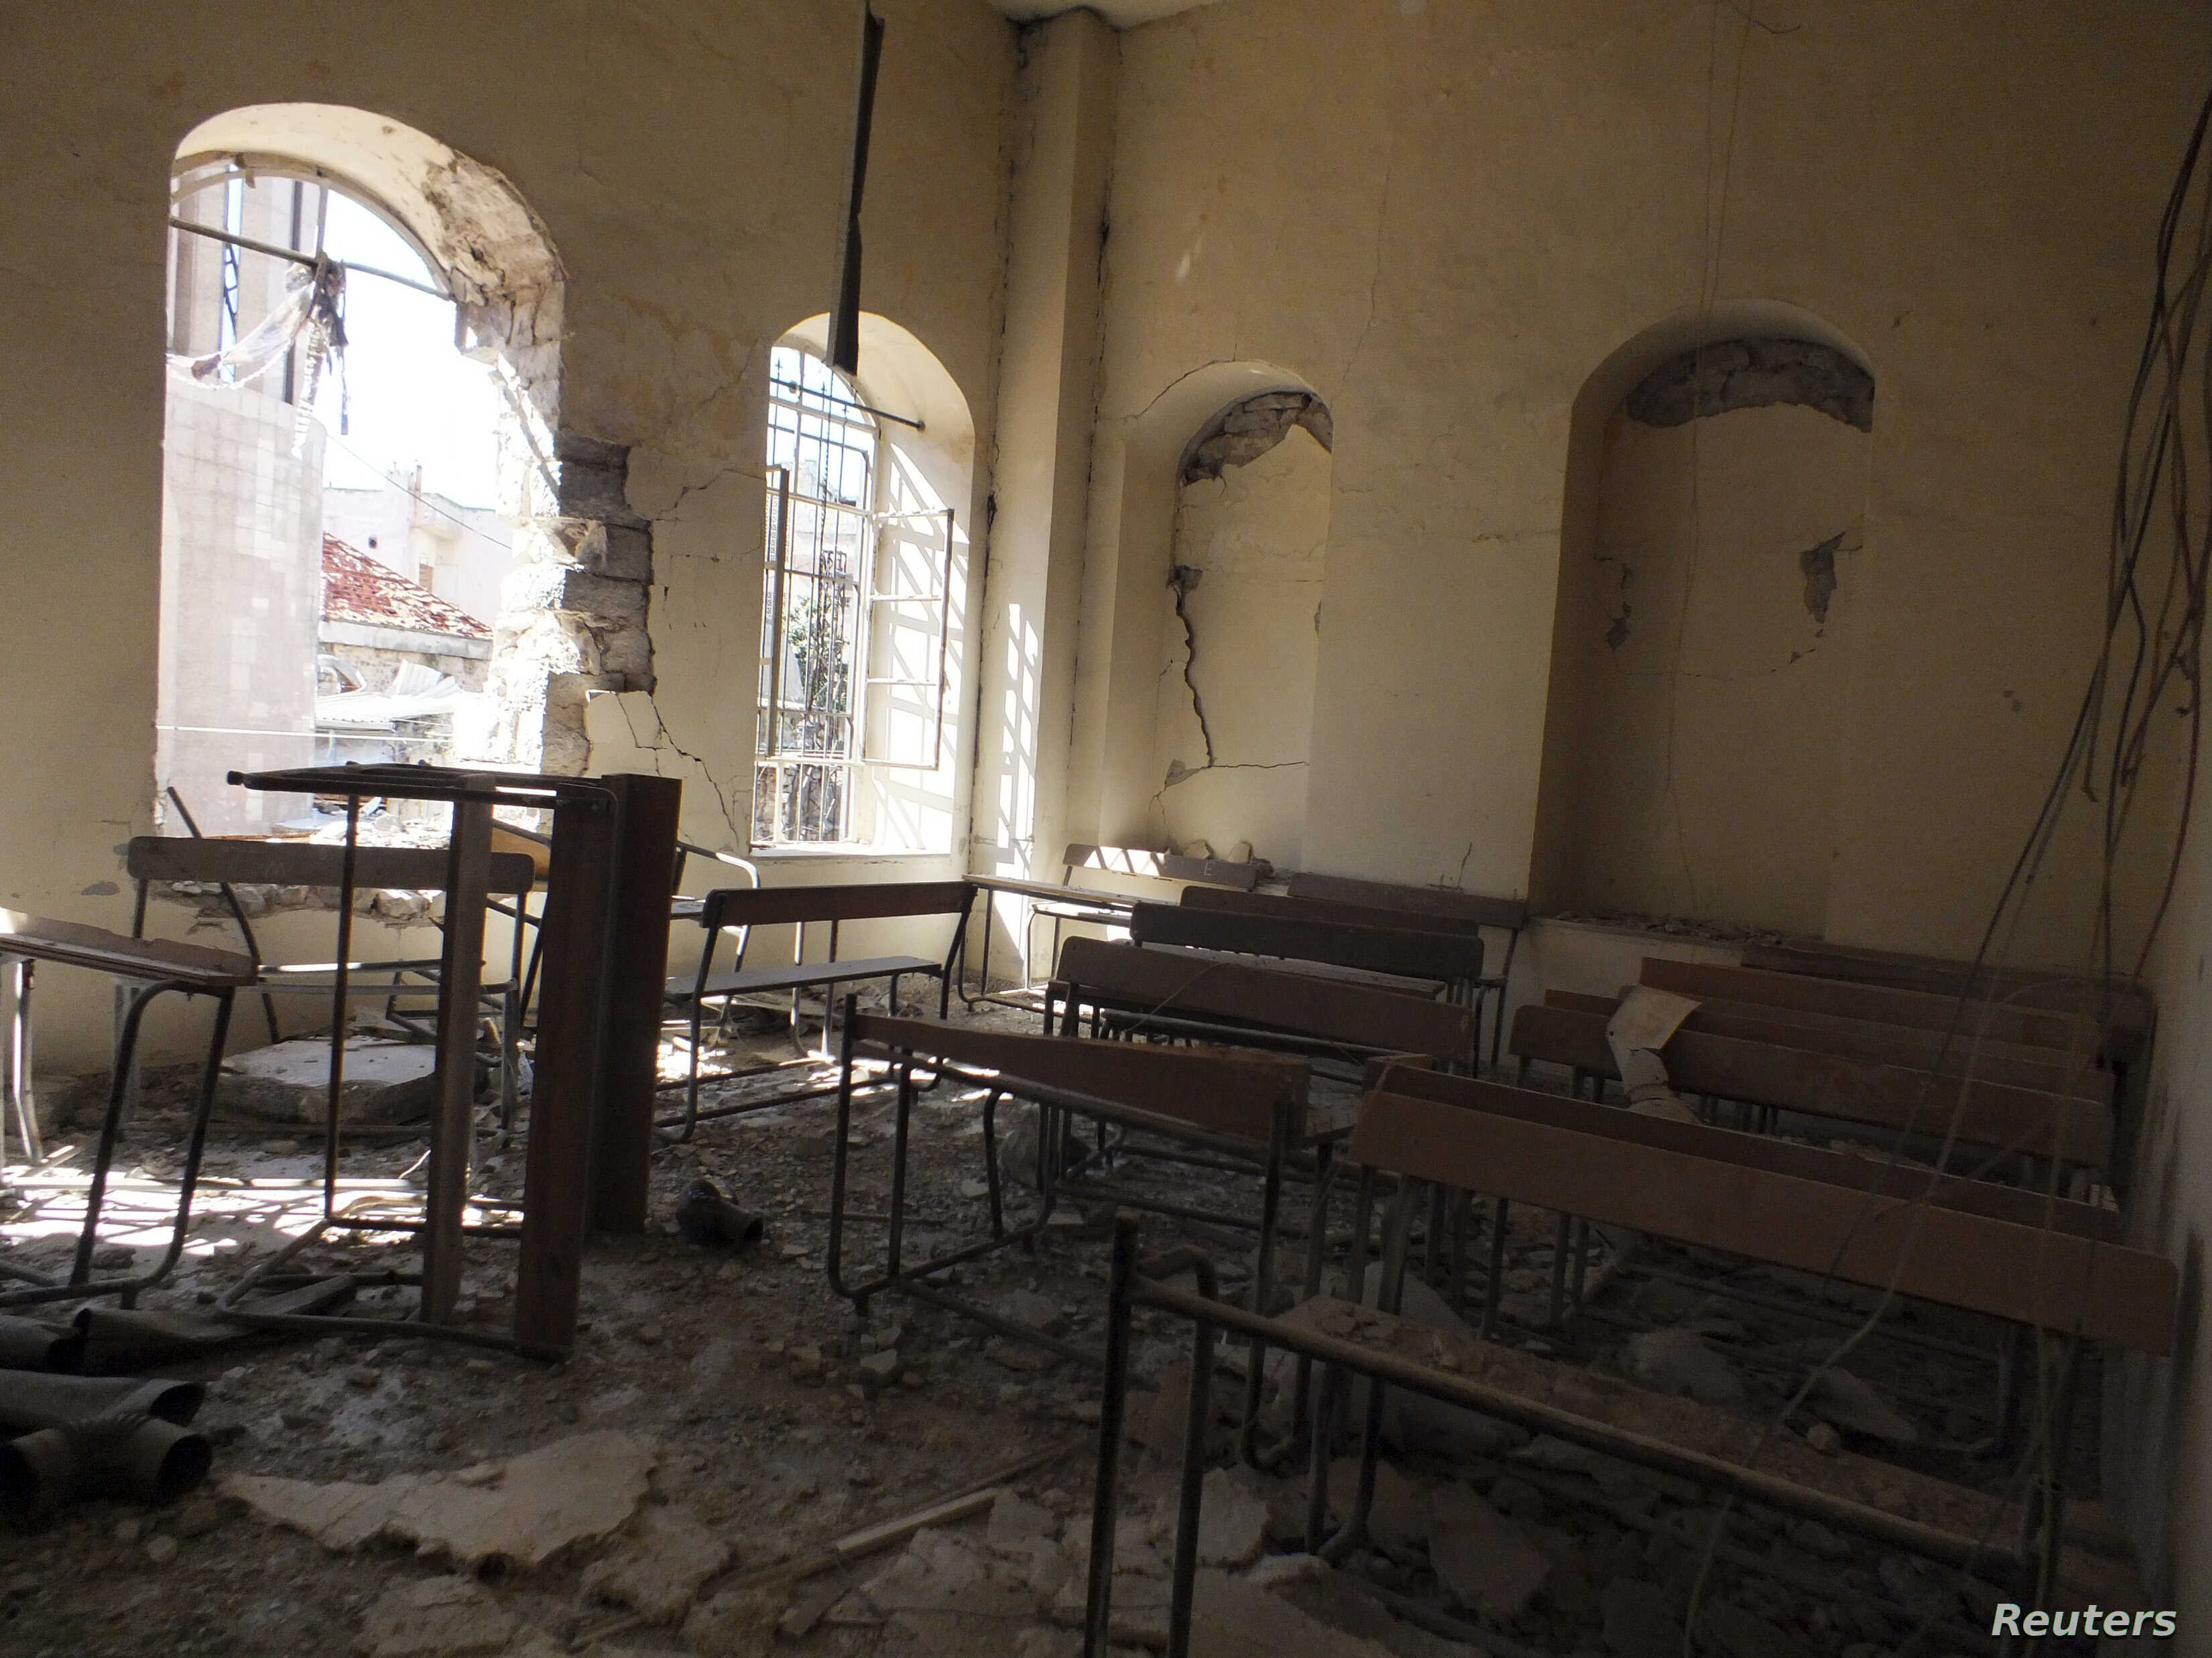 The interior of a damaged school is pictured in the old city of Homs, Syria, March 2, 2013.